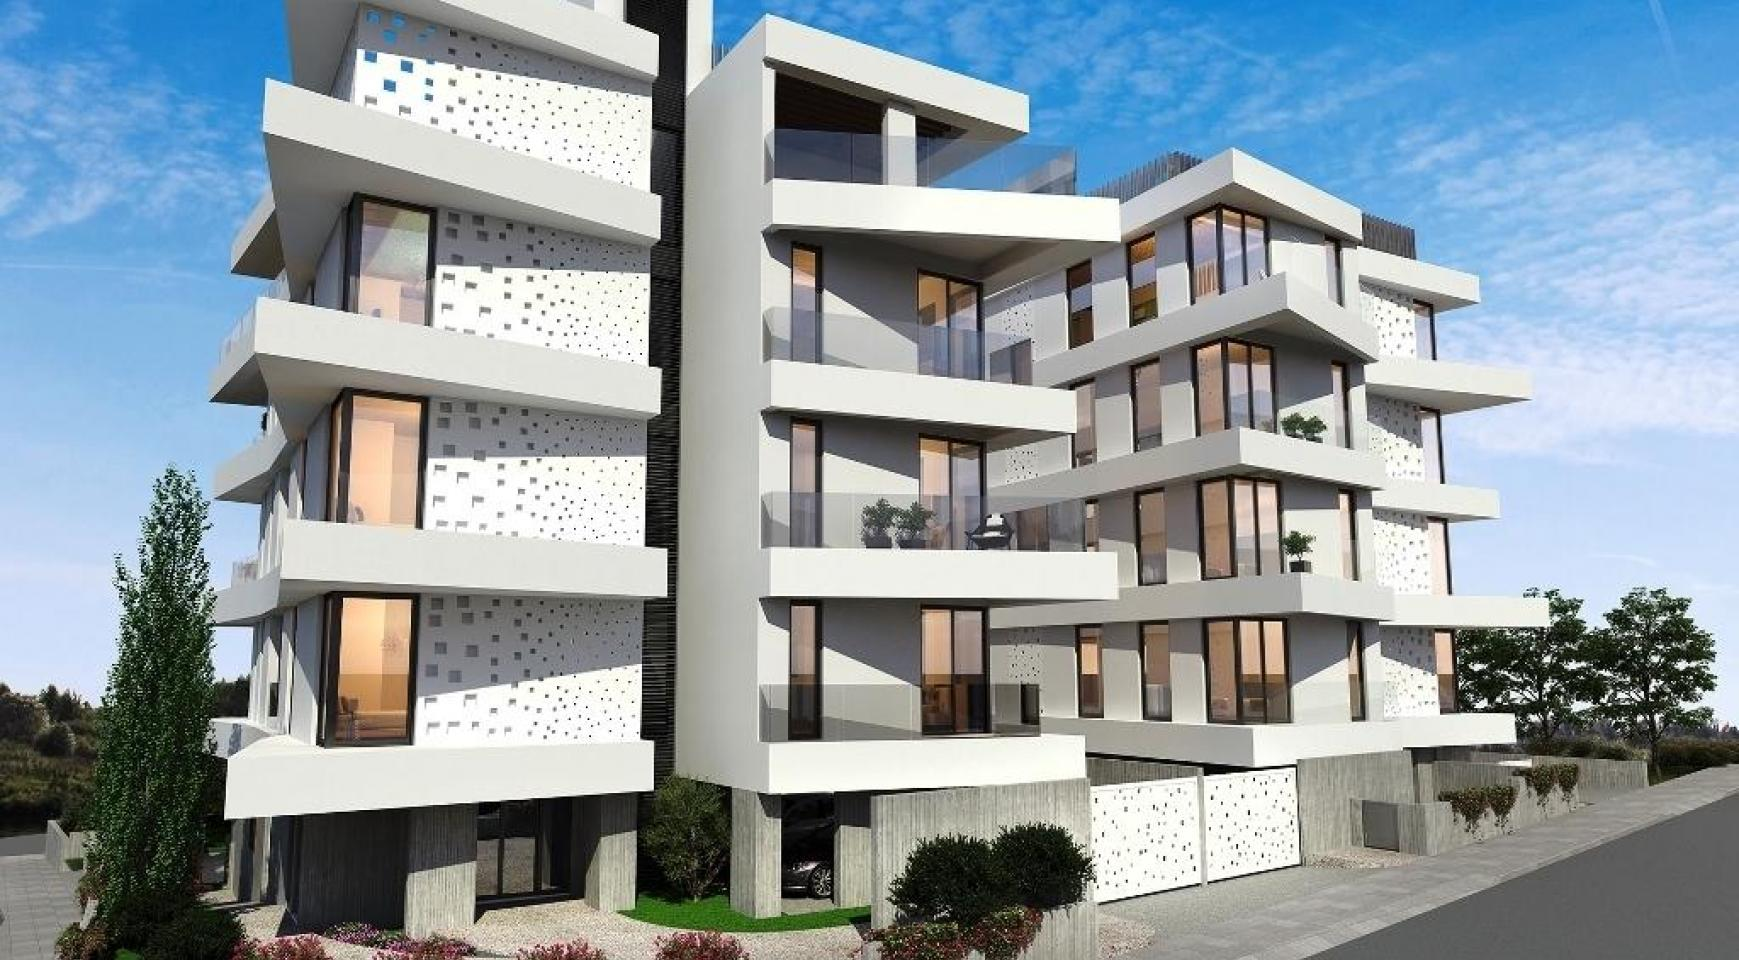 New 3 Bedroom Apartment in a Contemporary Building in Germasogeia - 8